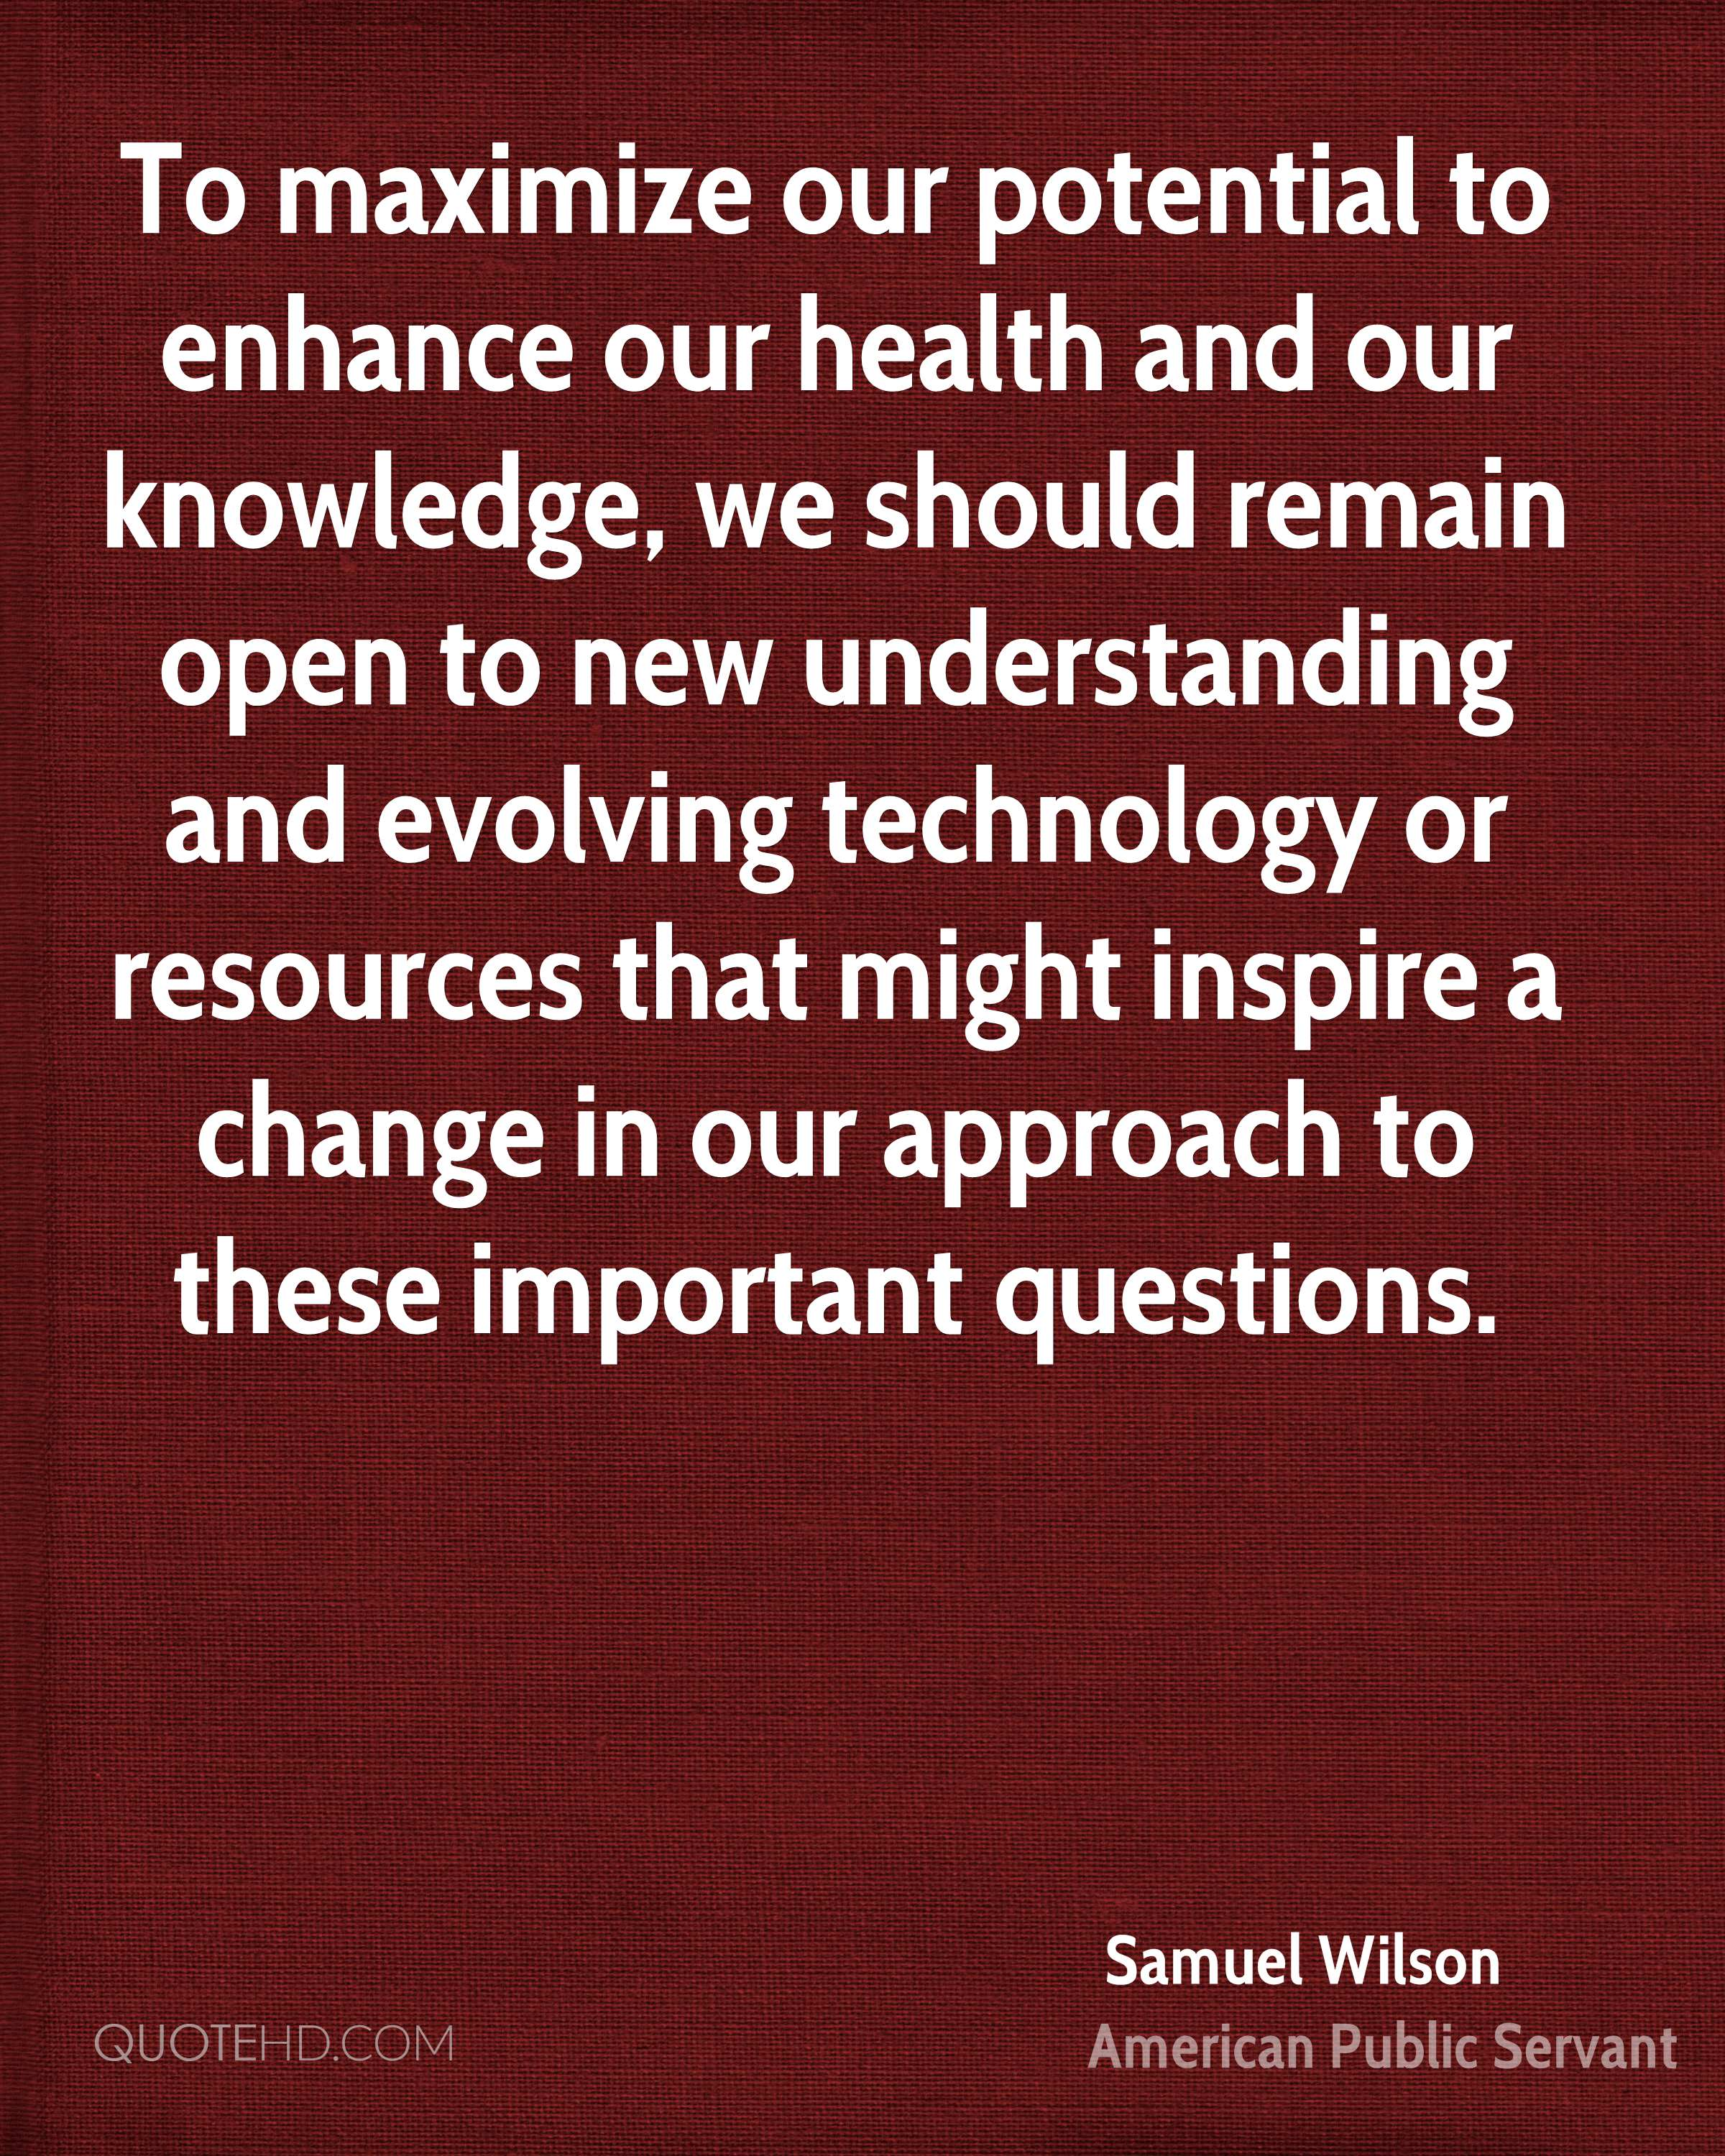 To maximize our potential to enhance our health and our knowledge, we should remain open to new understanding and evolving technology or resources that might inspire a change in our approach to these important questions.